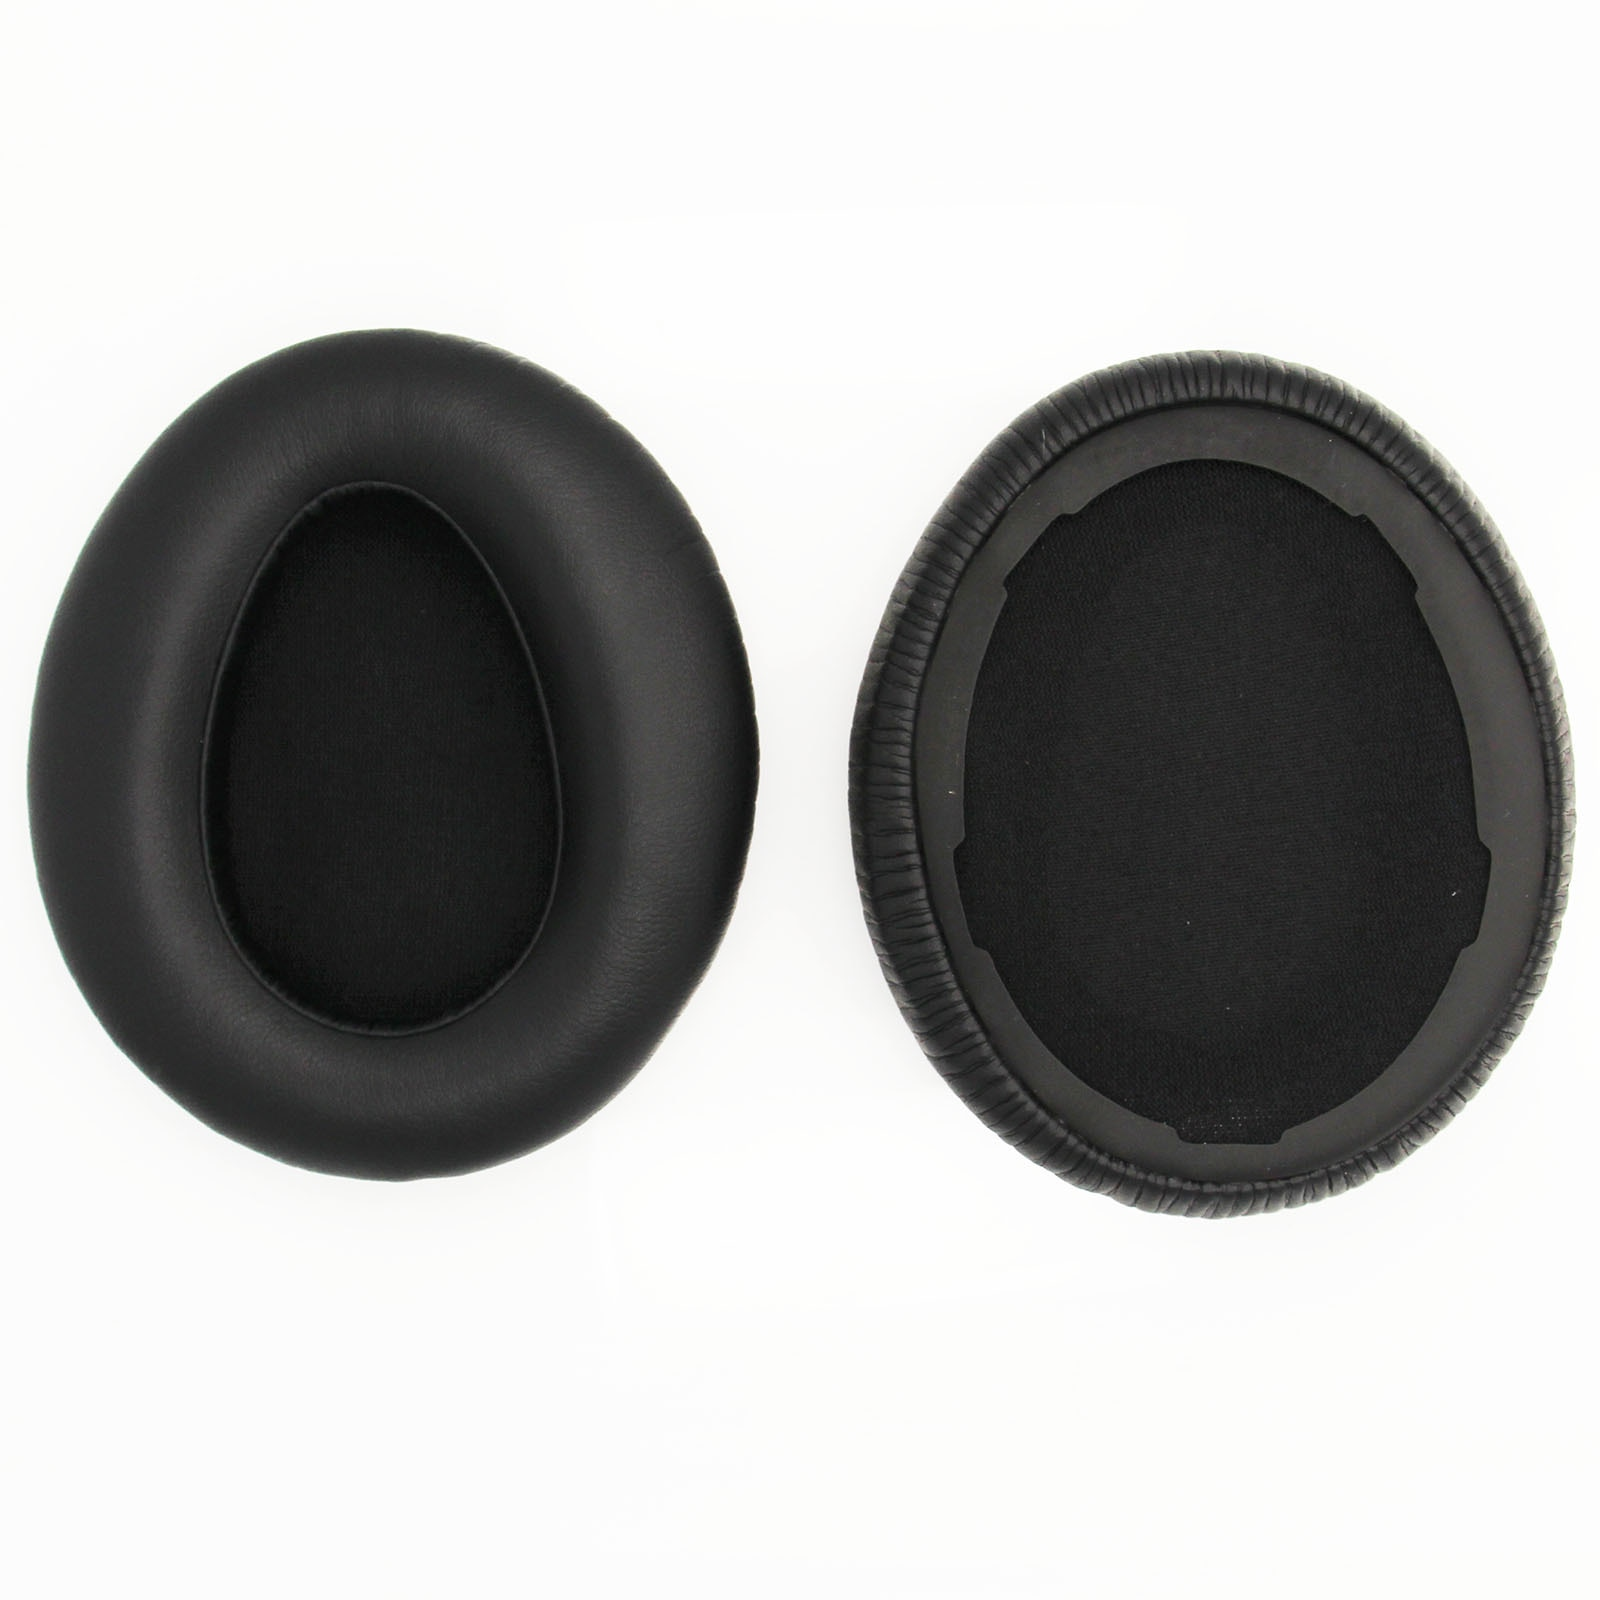 Replacement Foam Earmuffs Ear Cushion For Sony MDR-10RBT 10RNC 10R Headphones Accessories